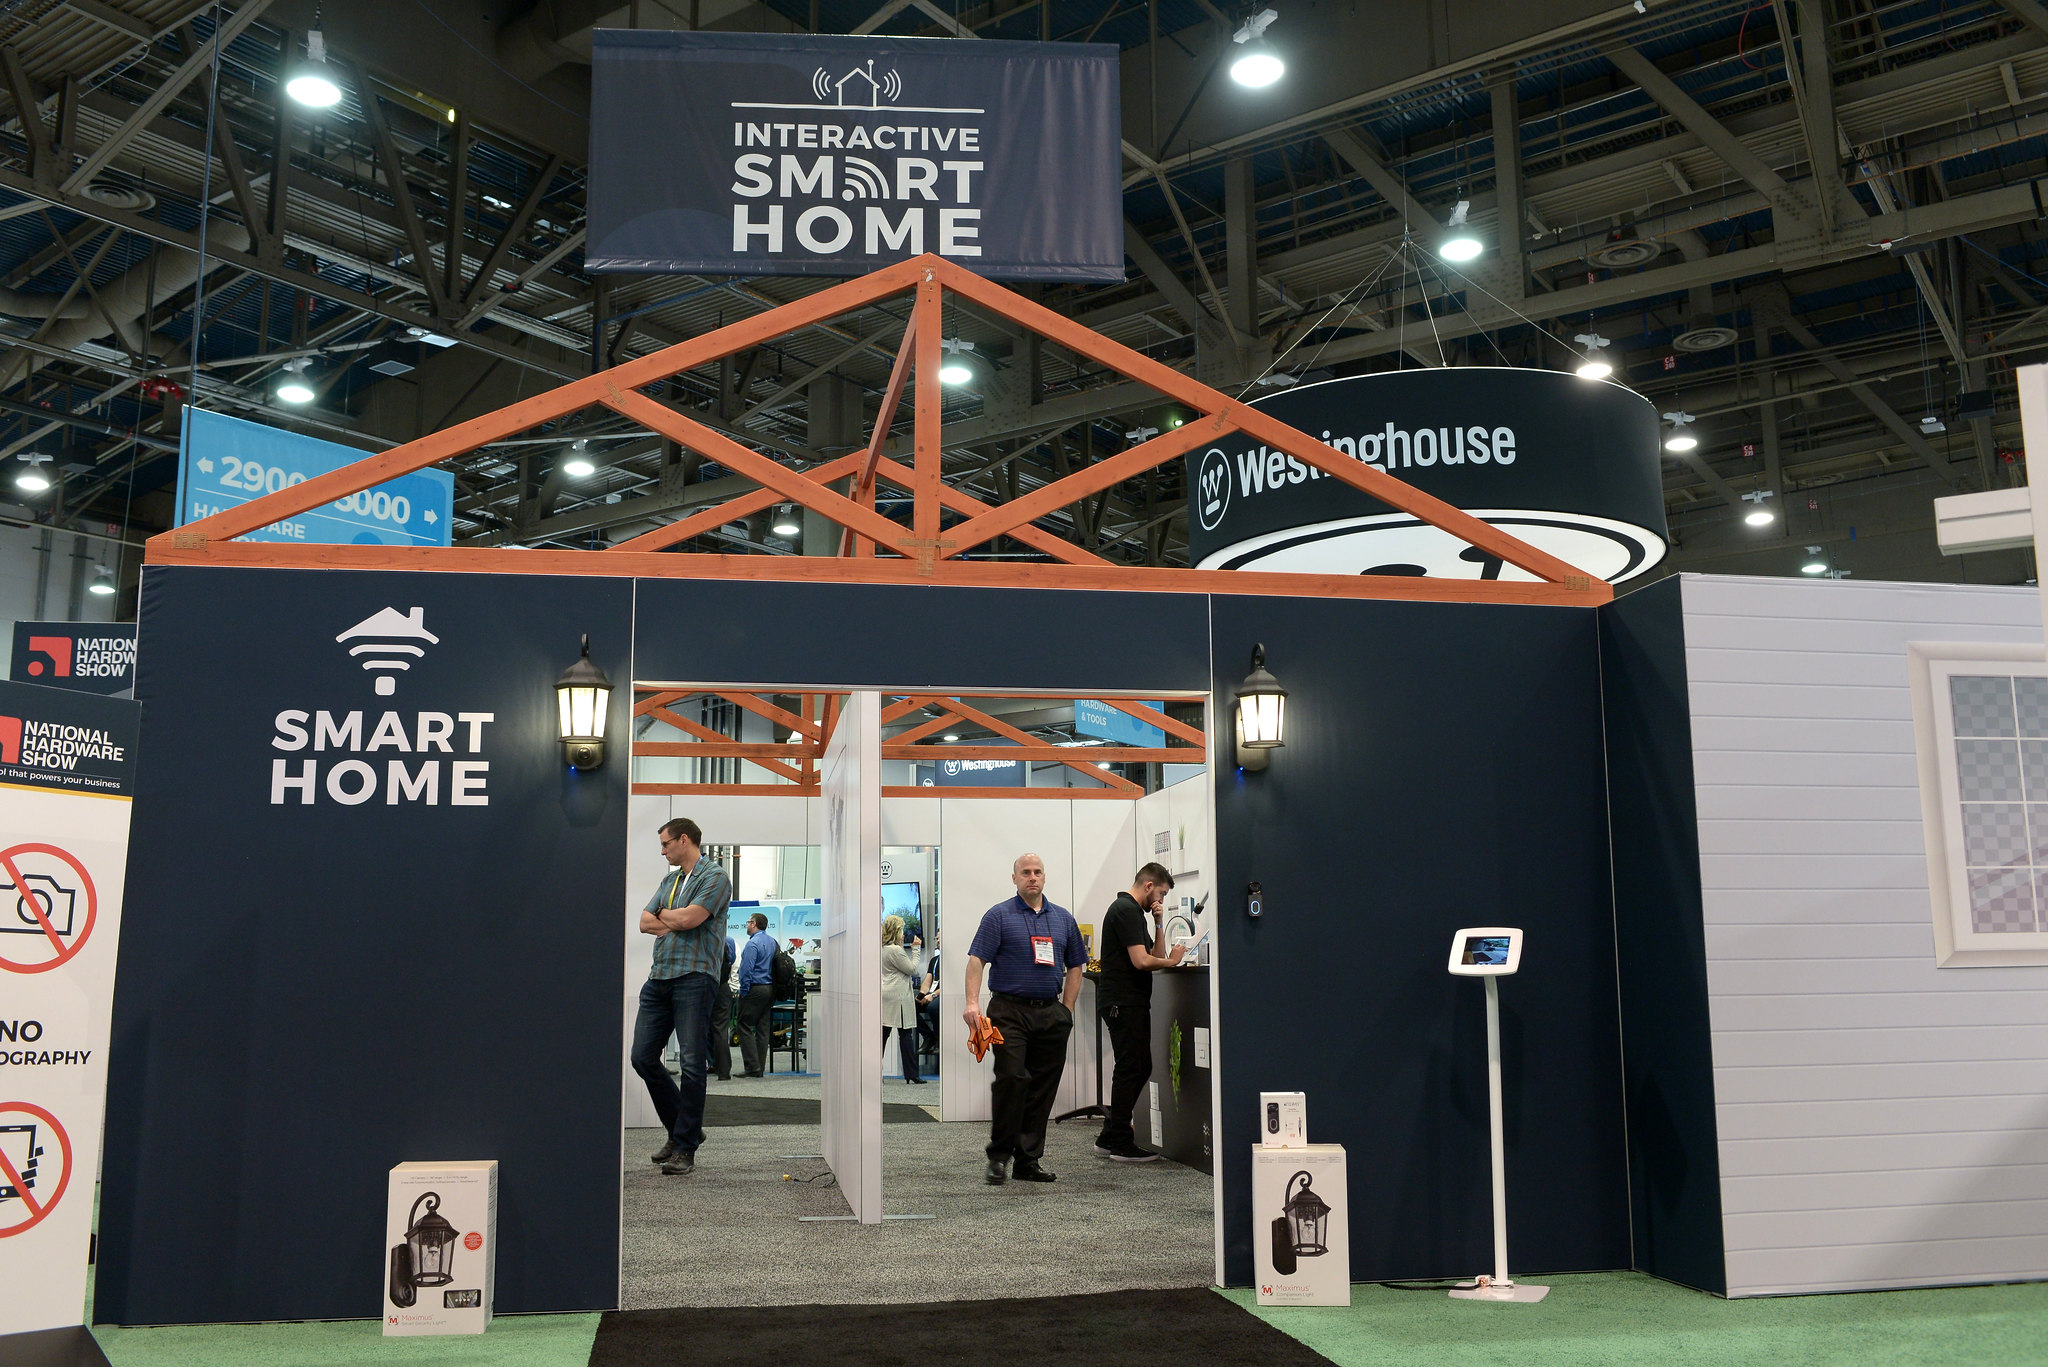 The interactivesmart home at last year's national hardware show   national hardware show 2020 (nhs)